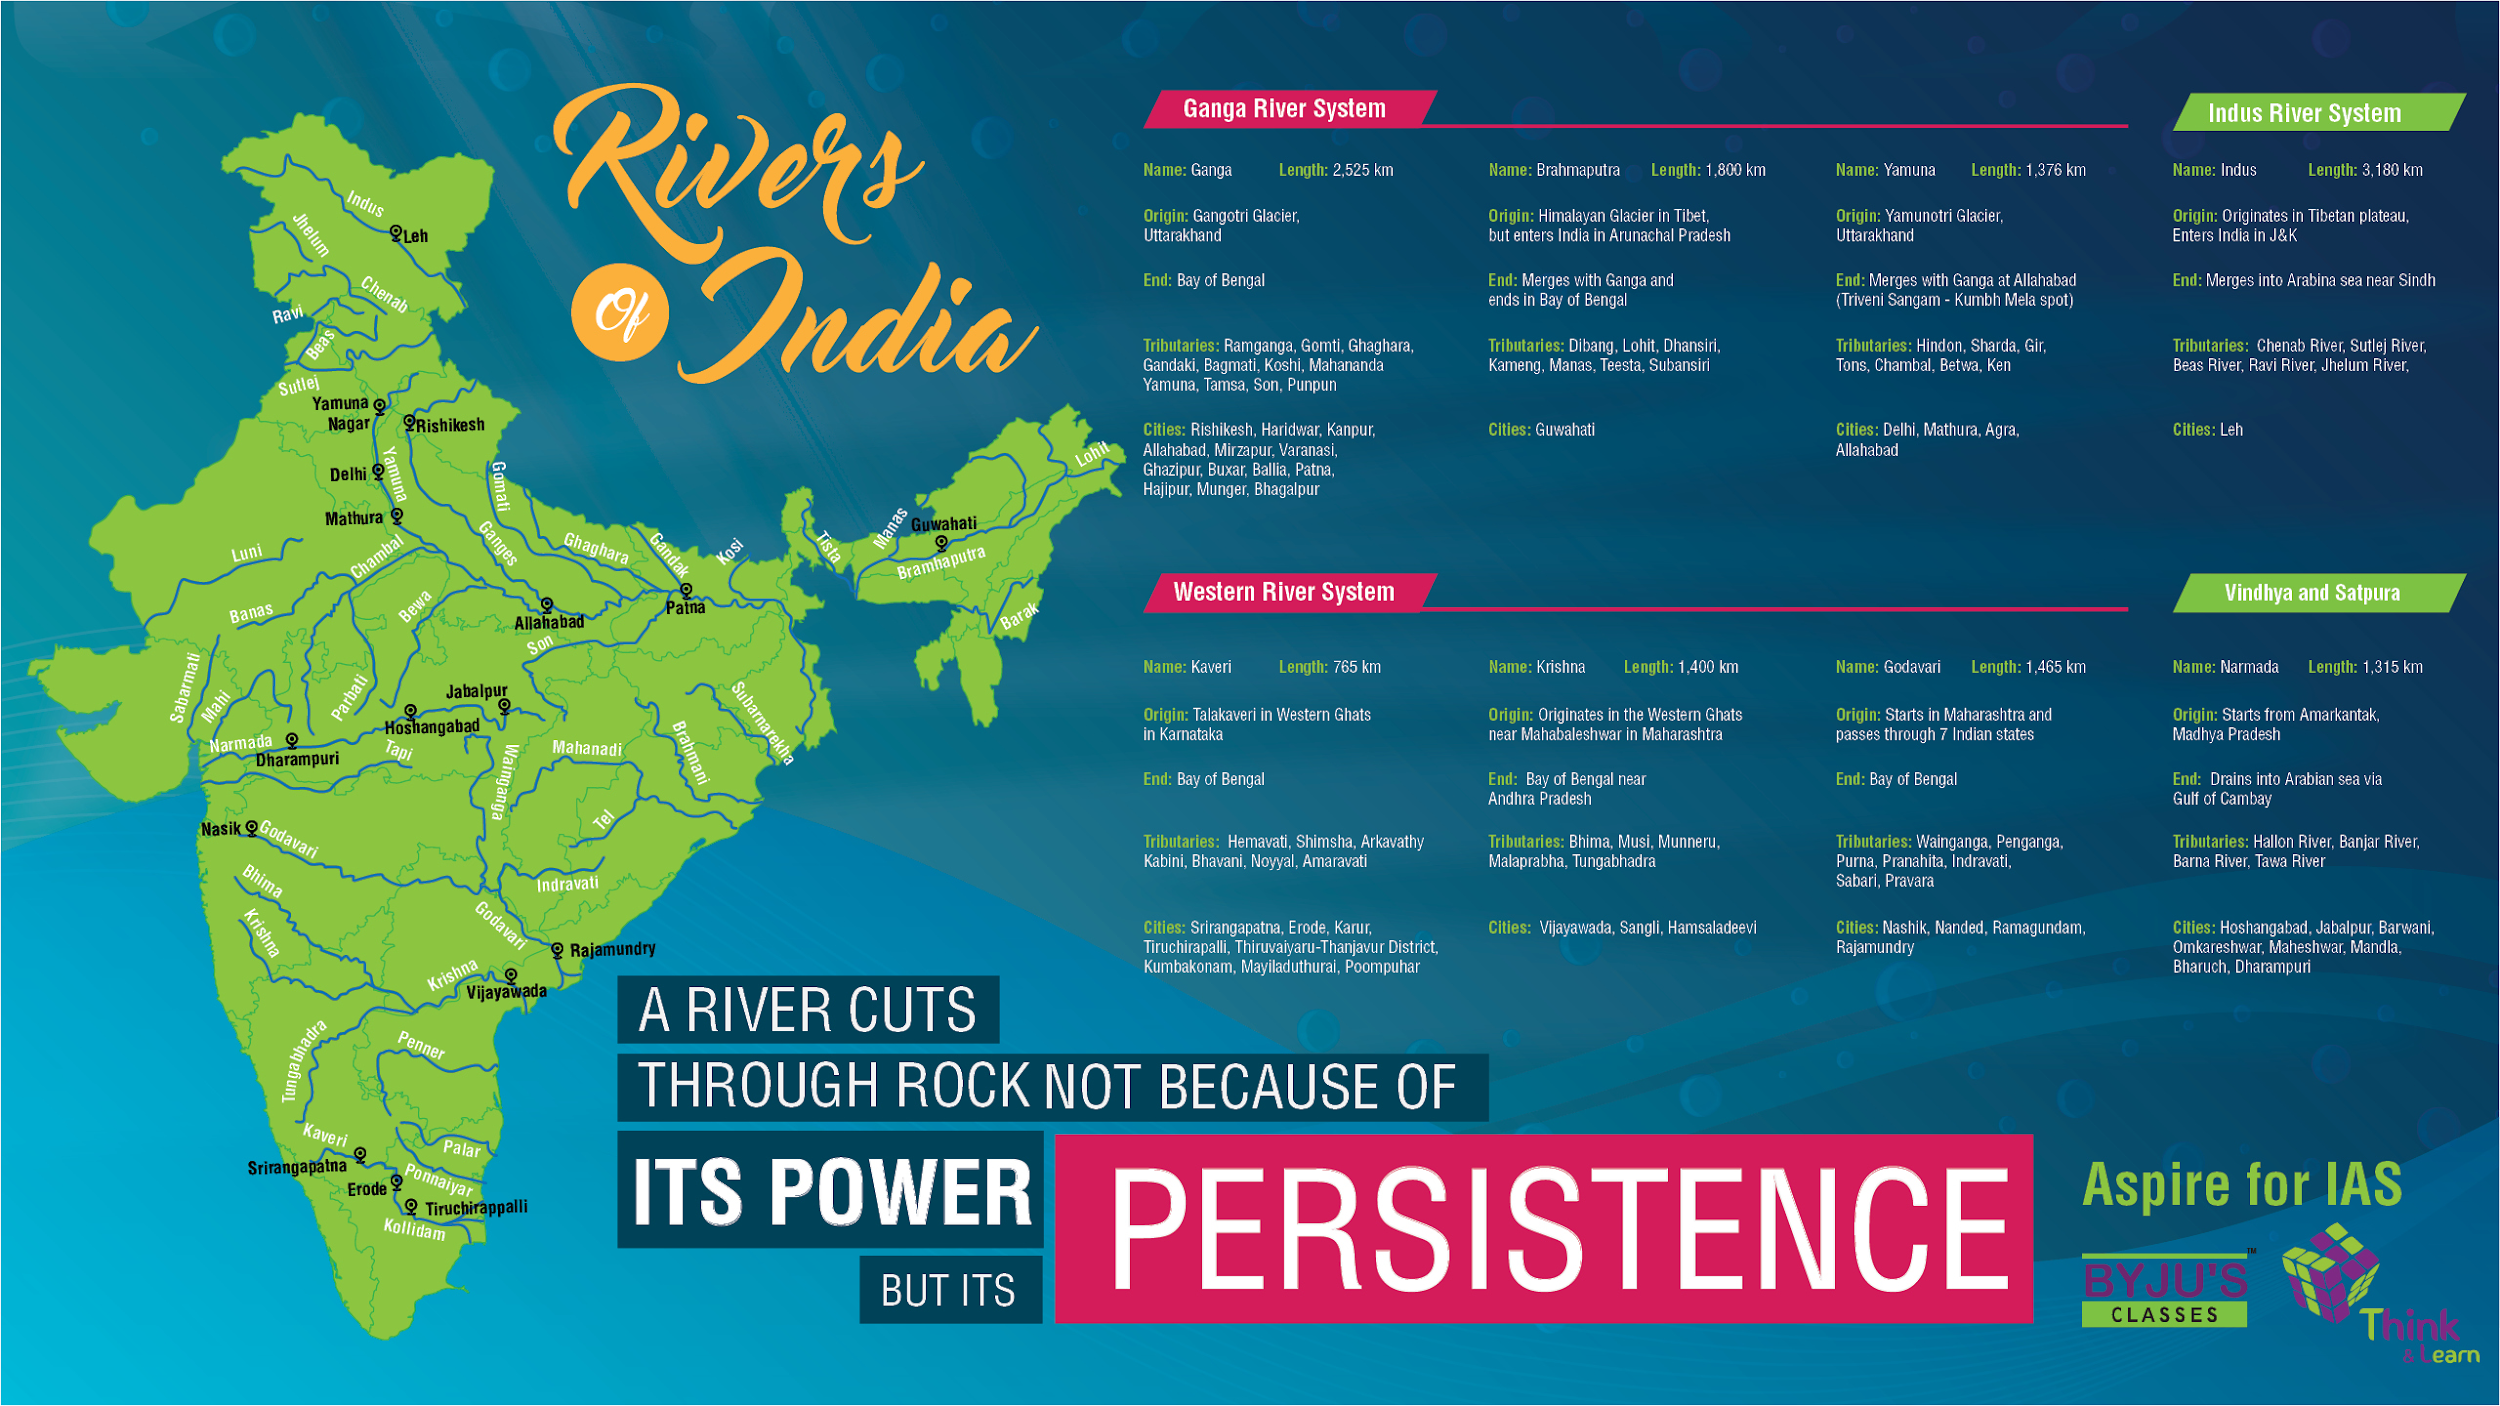 River Systems in India